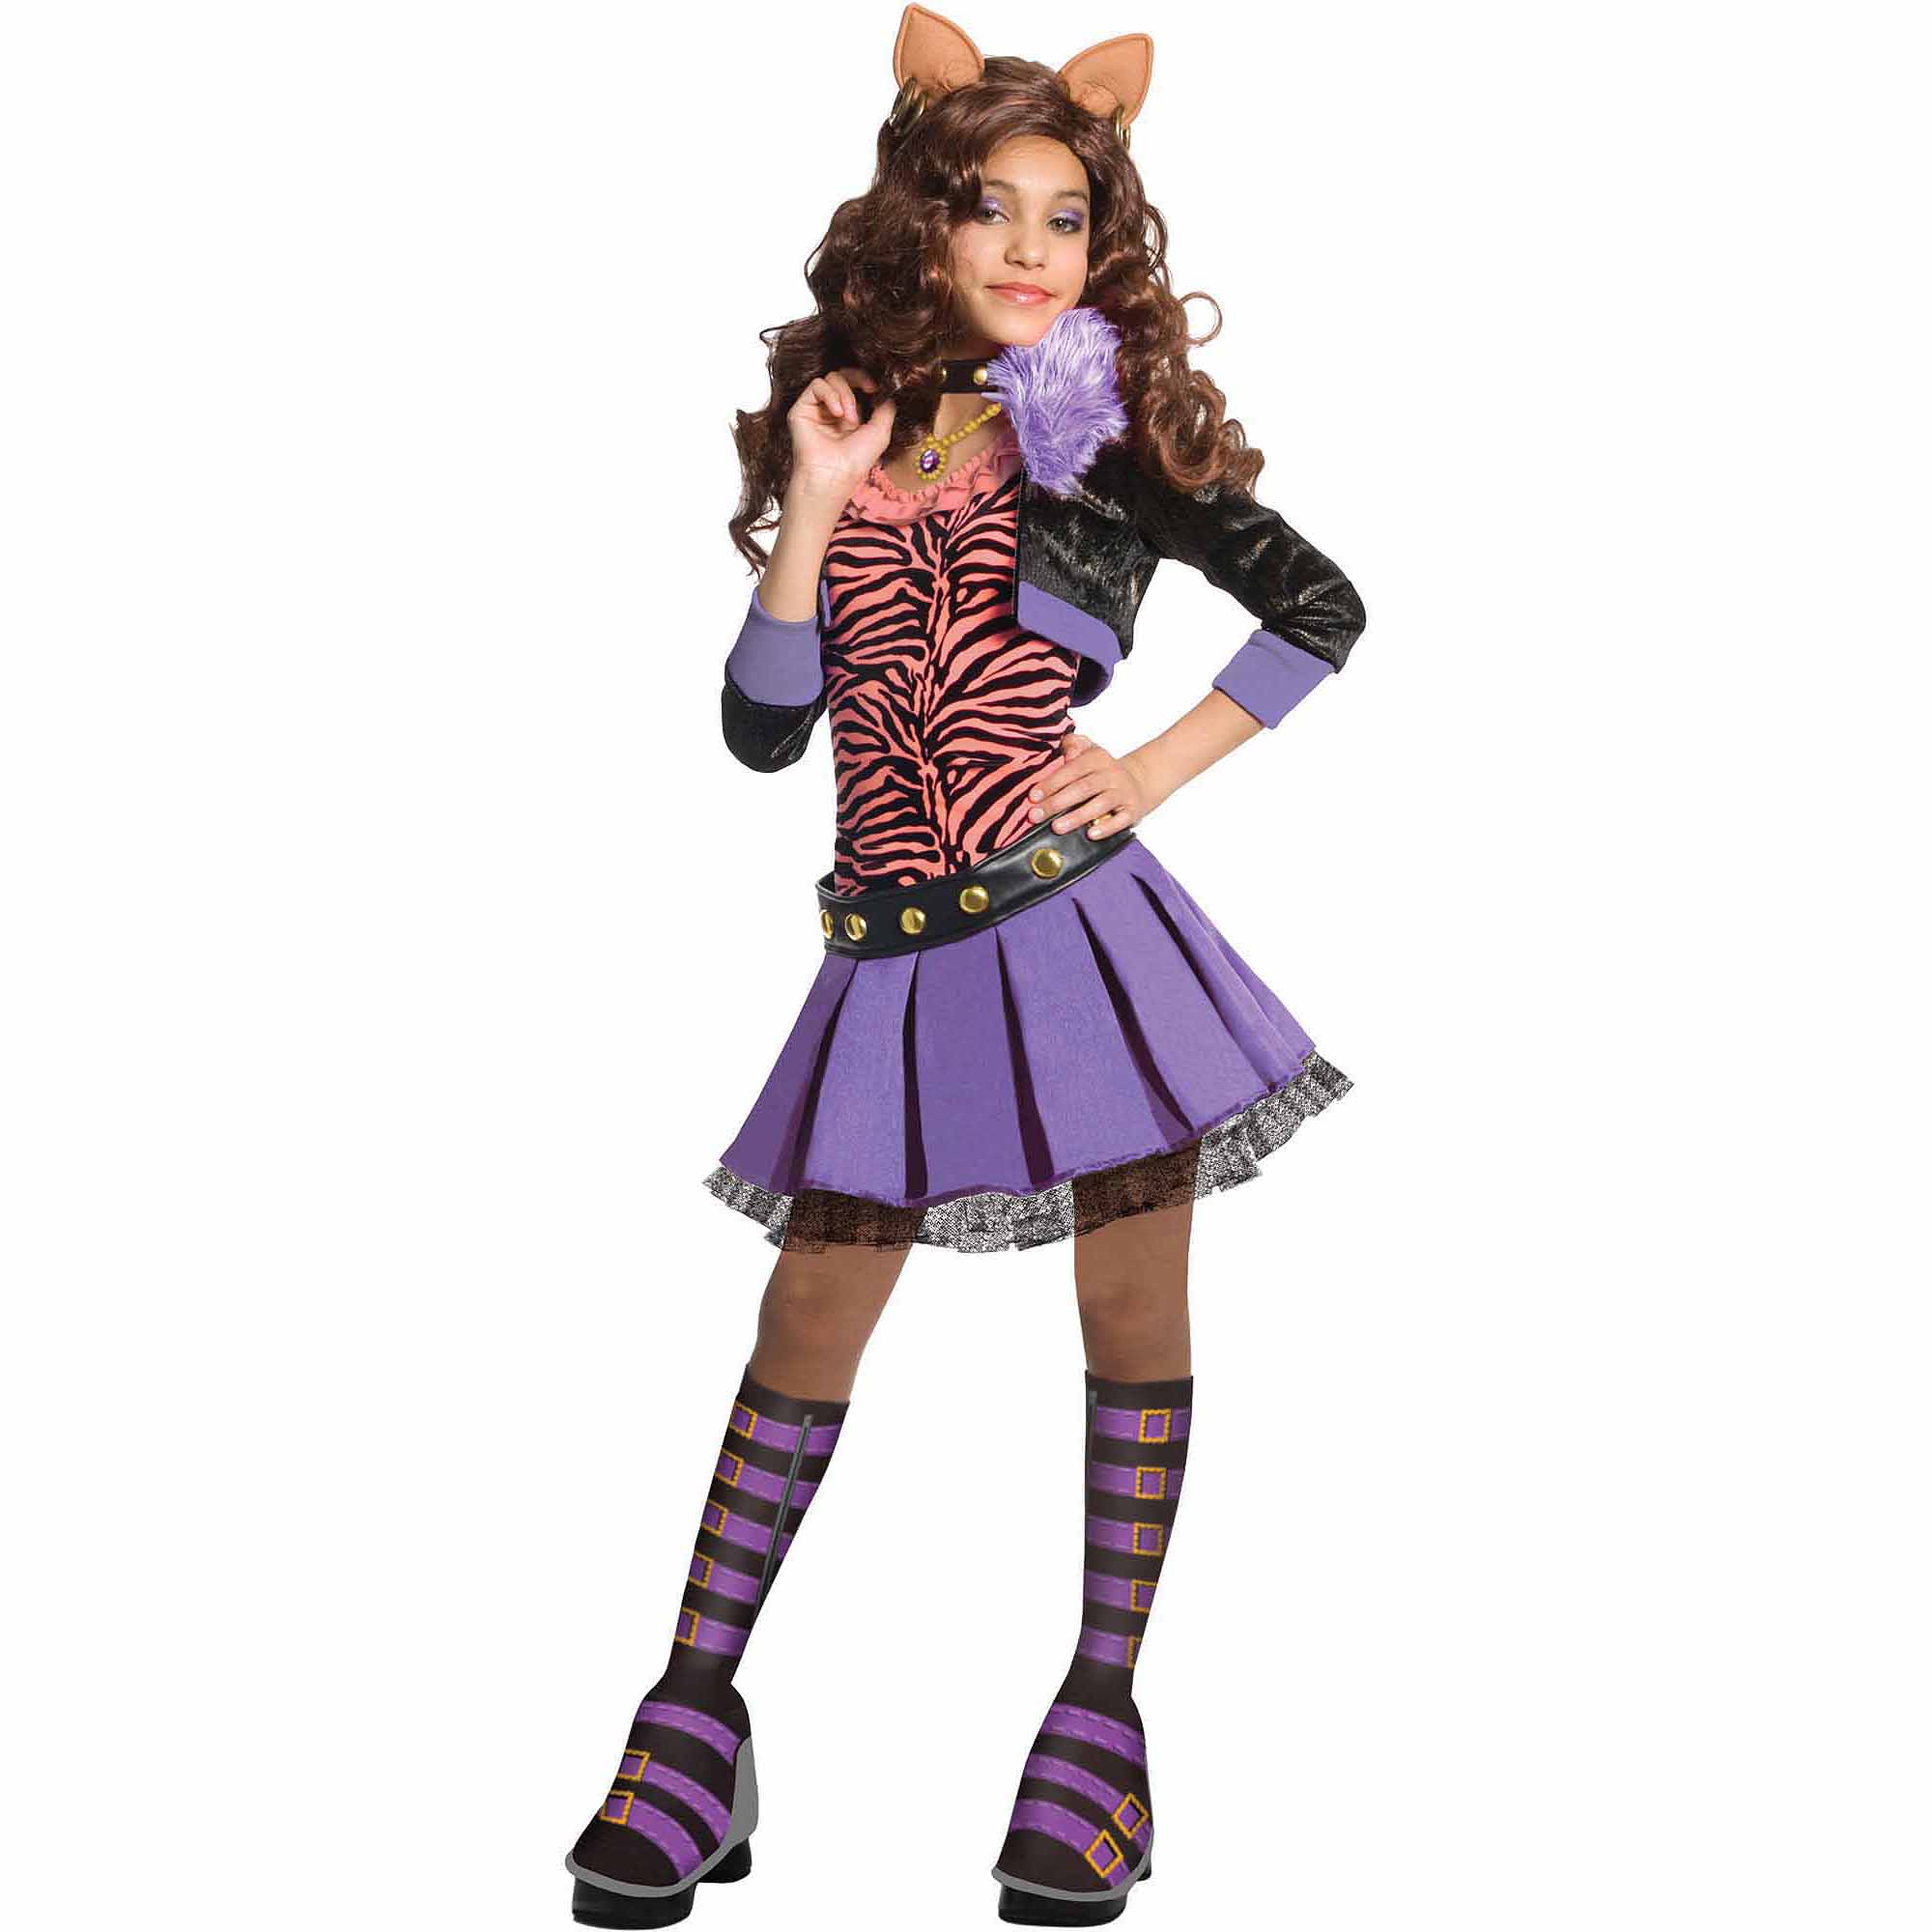 Monster High Clawdeen Wolf Child Halloween Costume  sc 1 st  Walmart & Monster High Clawdeen Wolf Child Halloween Costume - Walmart.com